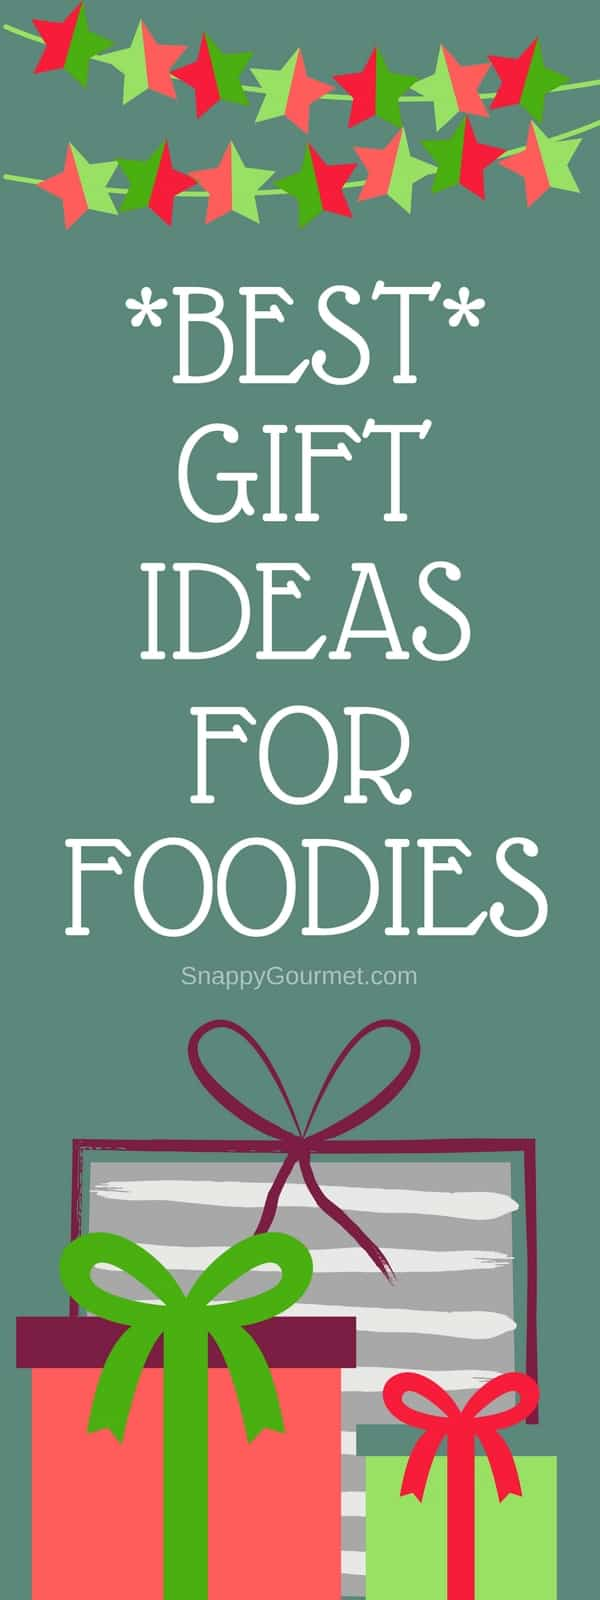 12 Days of Christmas Gift Ideas: Fun foodie gifts and ideas. SnappyGourmet.com